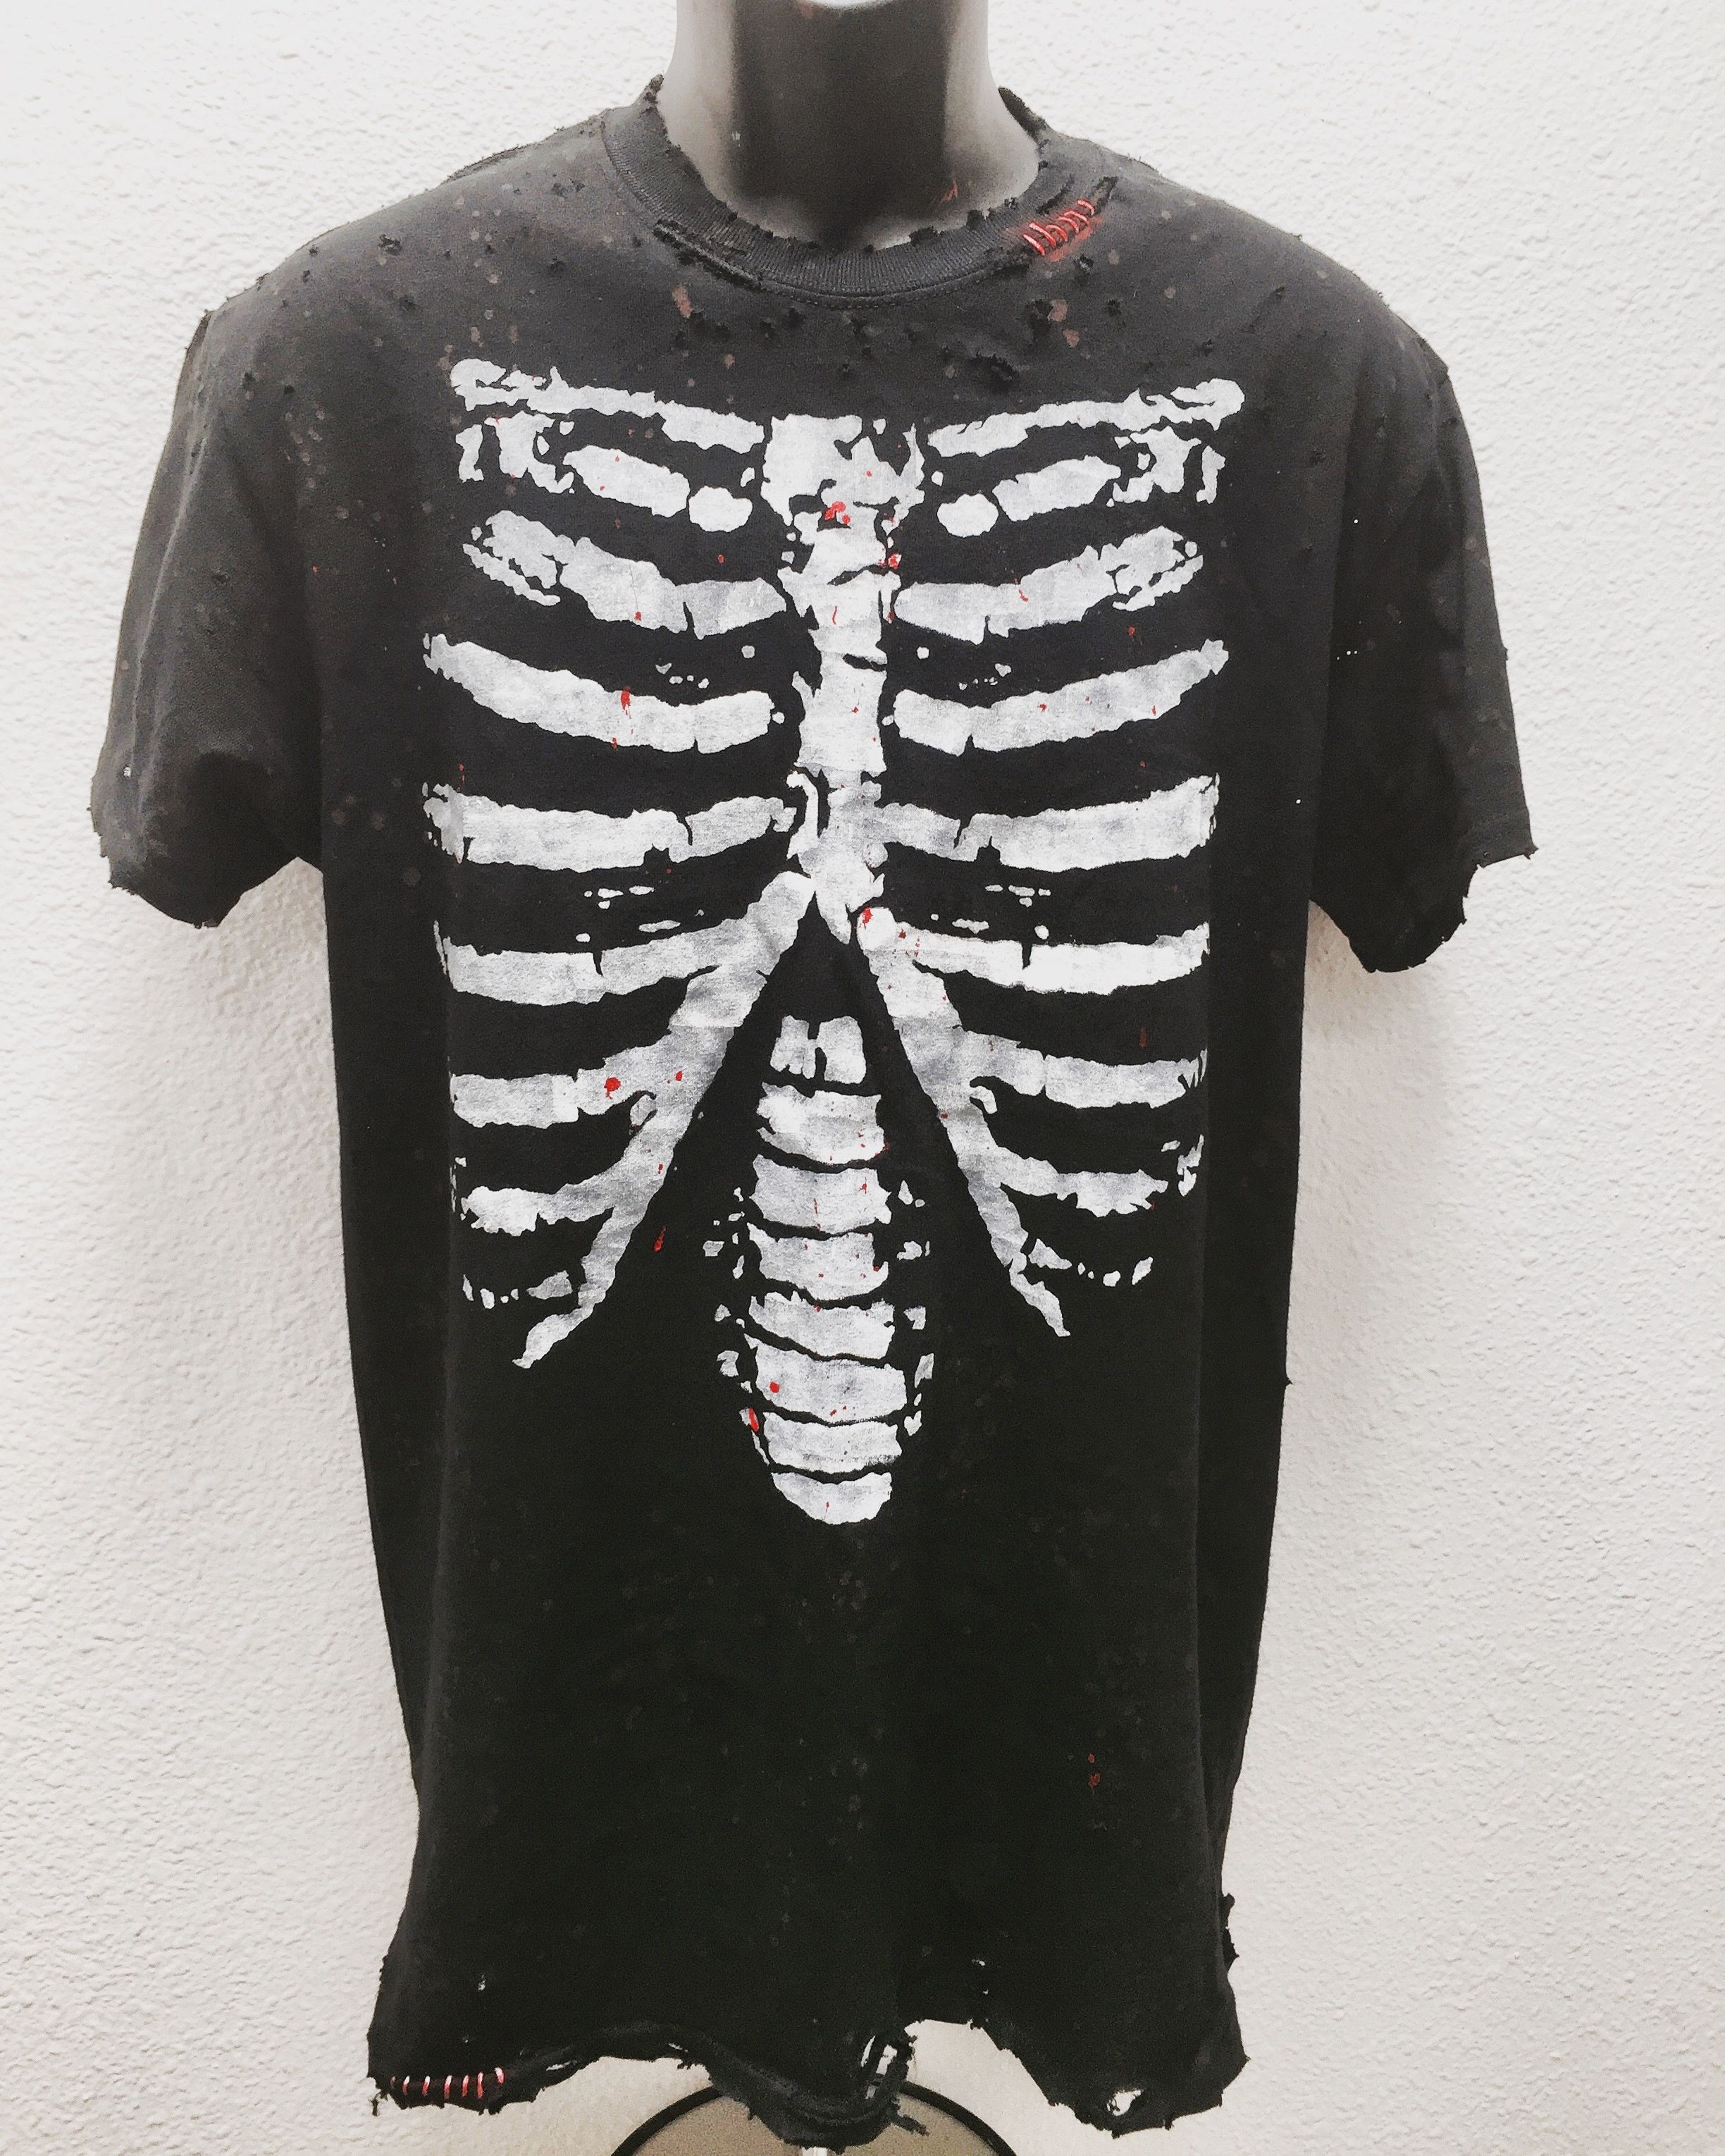 Distressed skeleton ribs t shirt by Chad Cherry ...